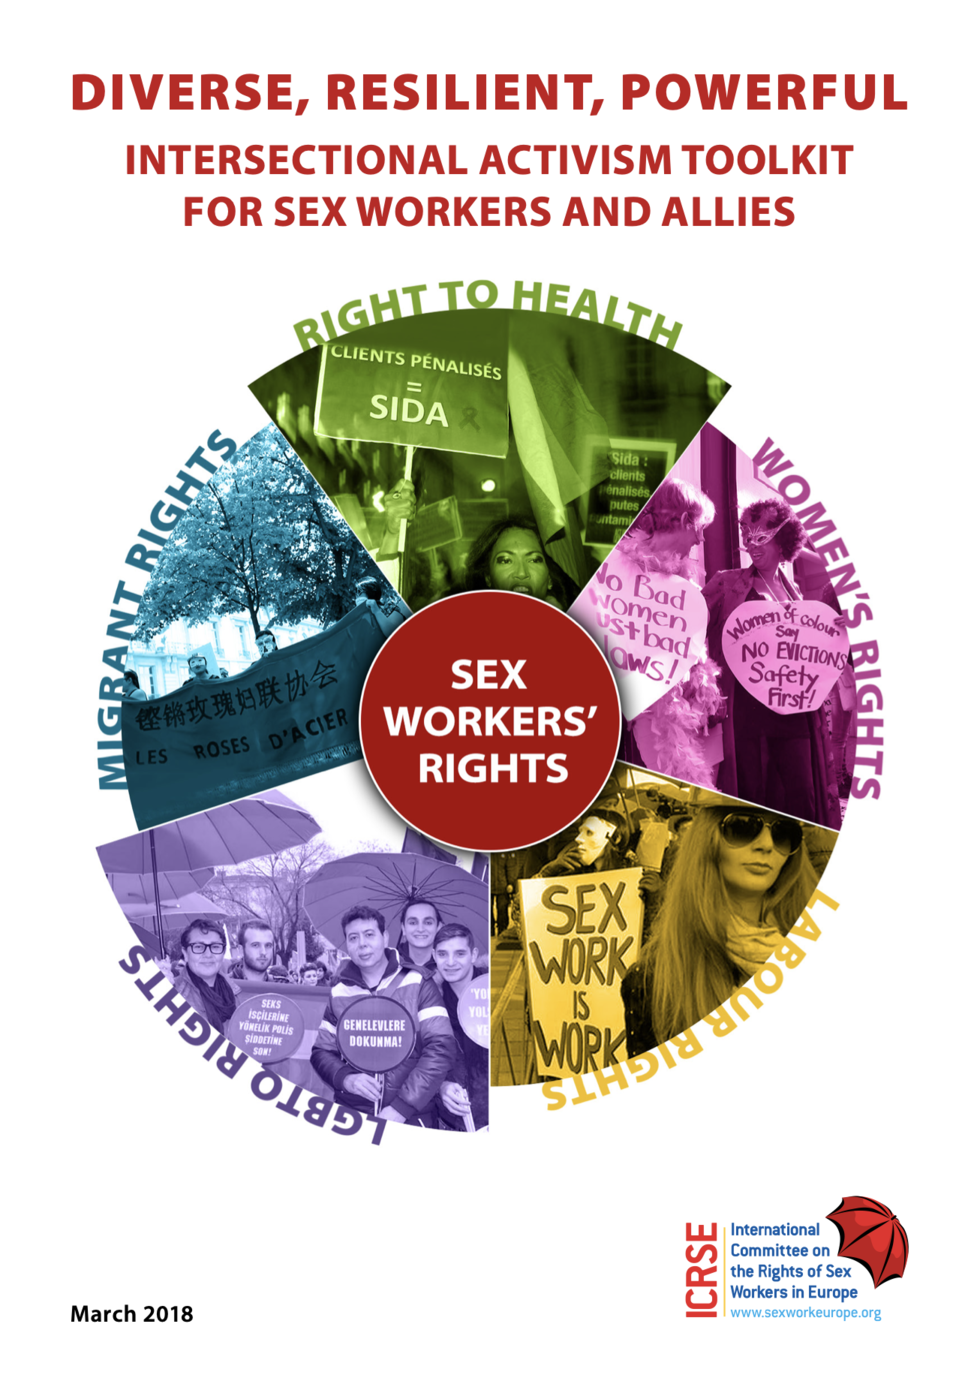 DIVERSE, RESILIENT, POWERFUL- INTERSECTIONAL ACTIVISM TOOL KIT FOR SEX WORKERS AND ALLIES